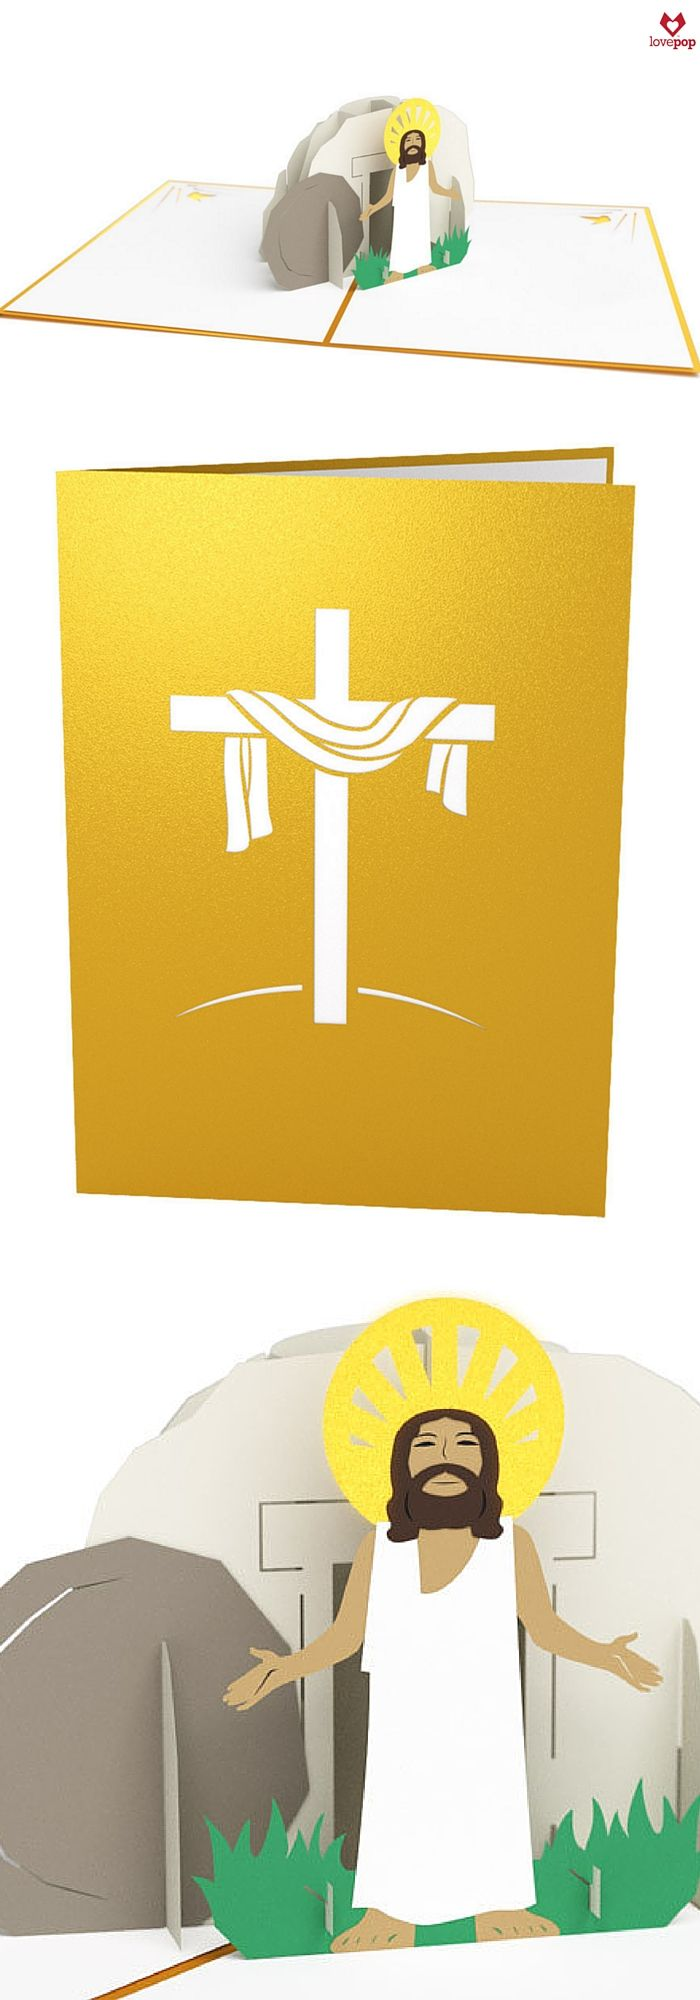 Celebrate His rising with an Easter pop up card of Jesus Christ. #HeHasRisen #EasterBlessings